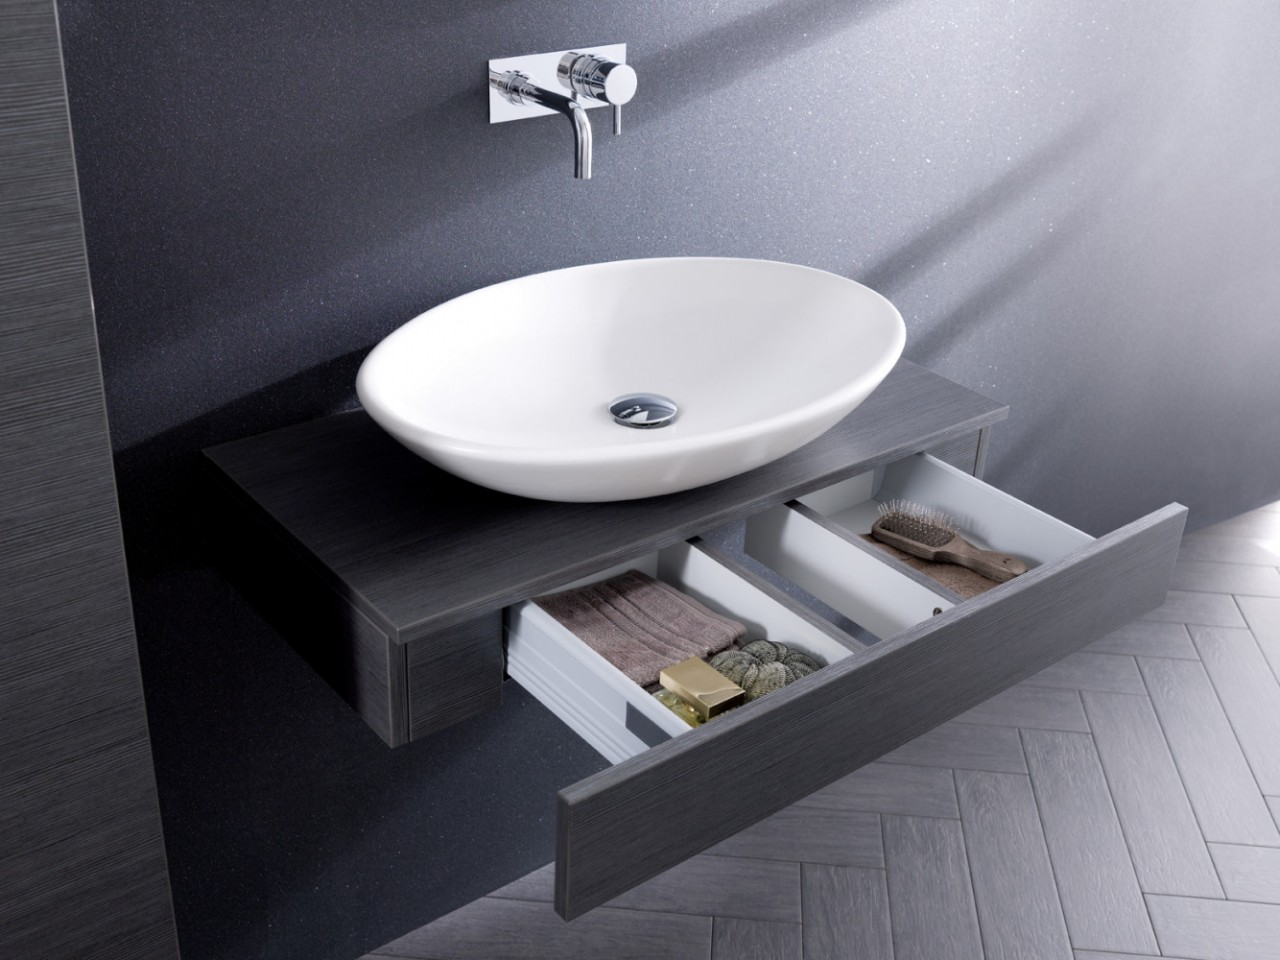 Quality bathroom furniture uk - Bauhaus Bathrooms Offer A Wide Selection Of Exceptional Quality Bathroom Furniture And Elegant Ceramics Including A Range Of Vanity And Storage Units